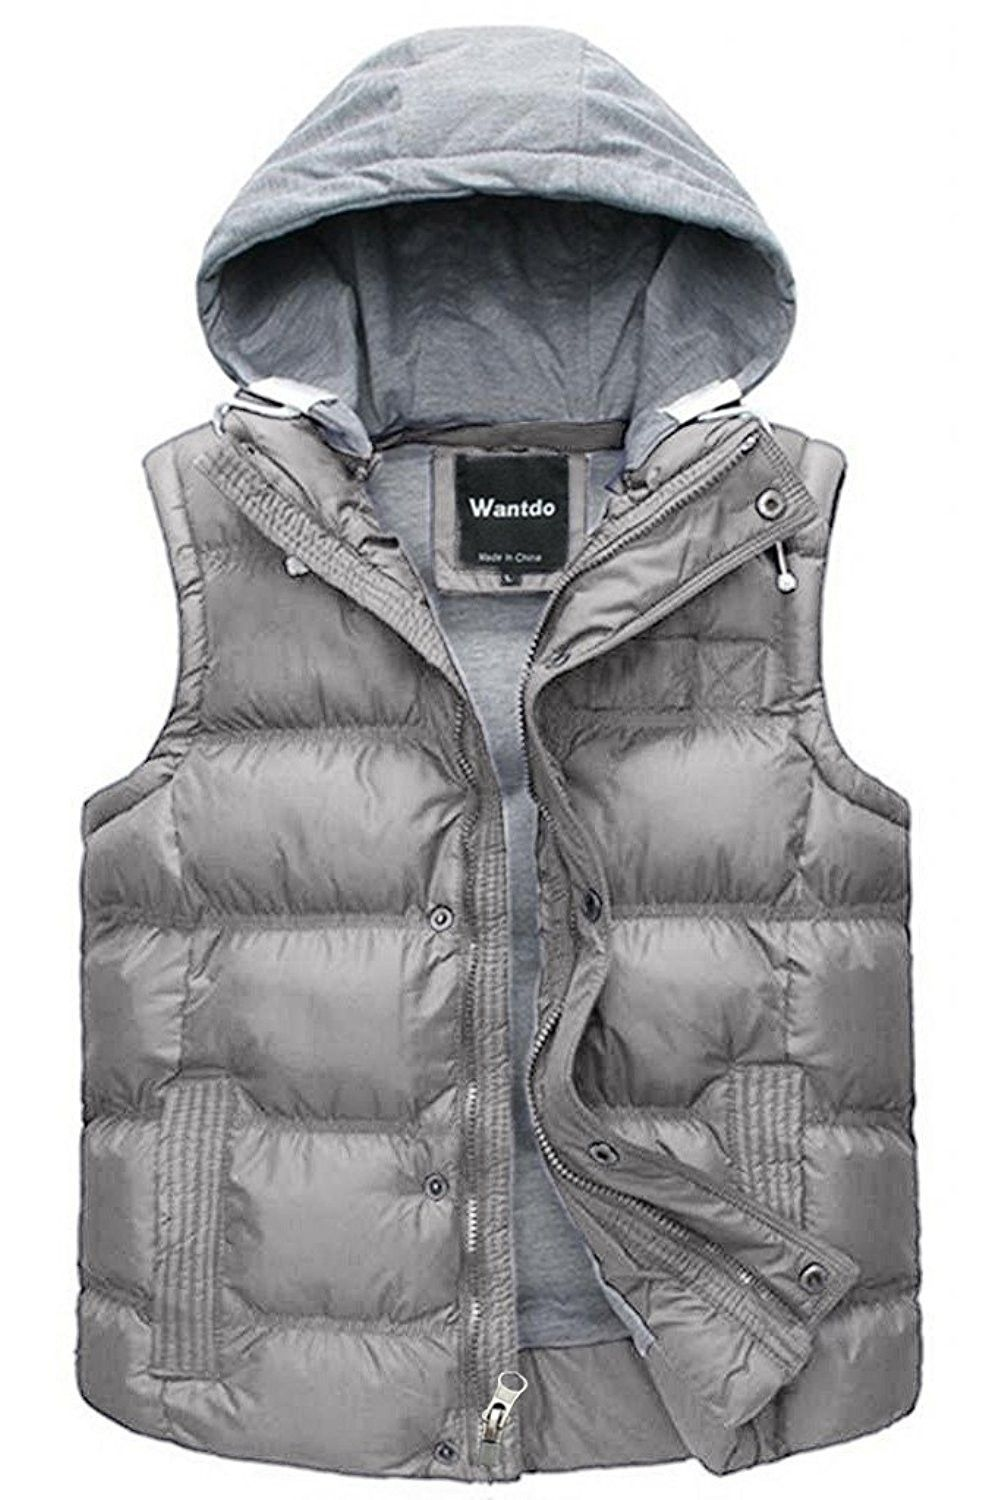 Men's Winter Puffer Vest Removable Hooded Quilted Warm Sleeveless Jacket  Gilet - Grey - CD182T4323A,Men's Clo…   Sleeveless jacket, Winter puffer  vest, Mens outfits